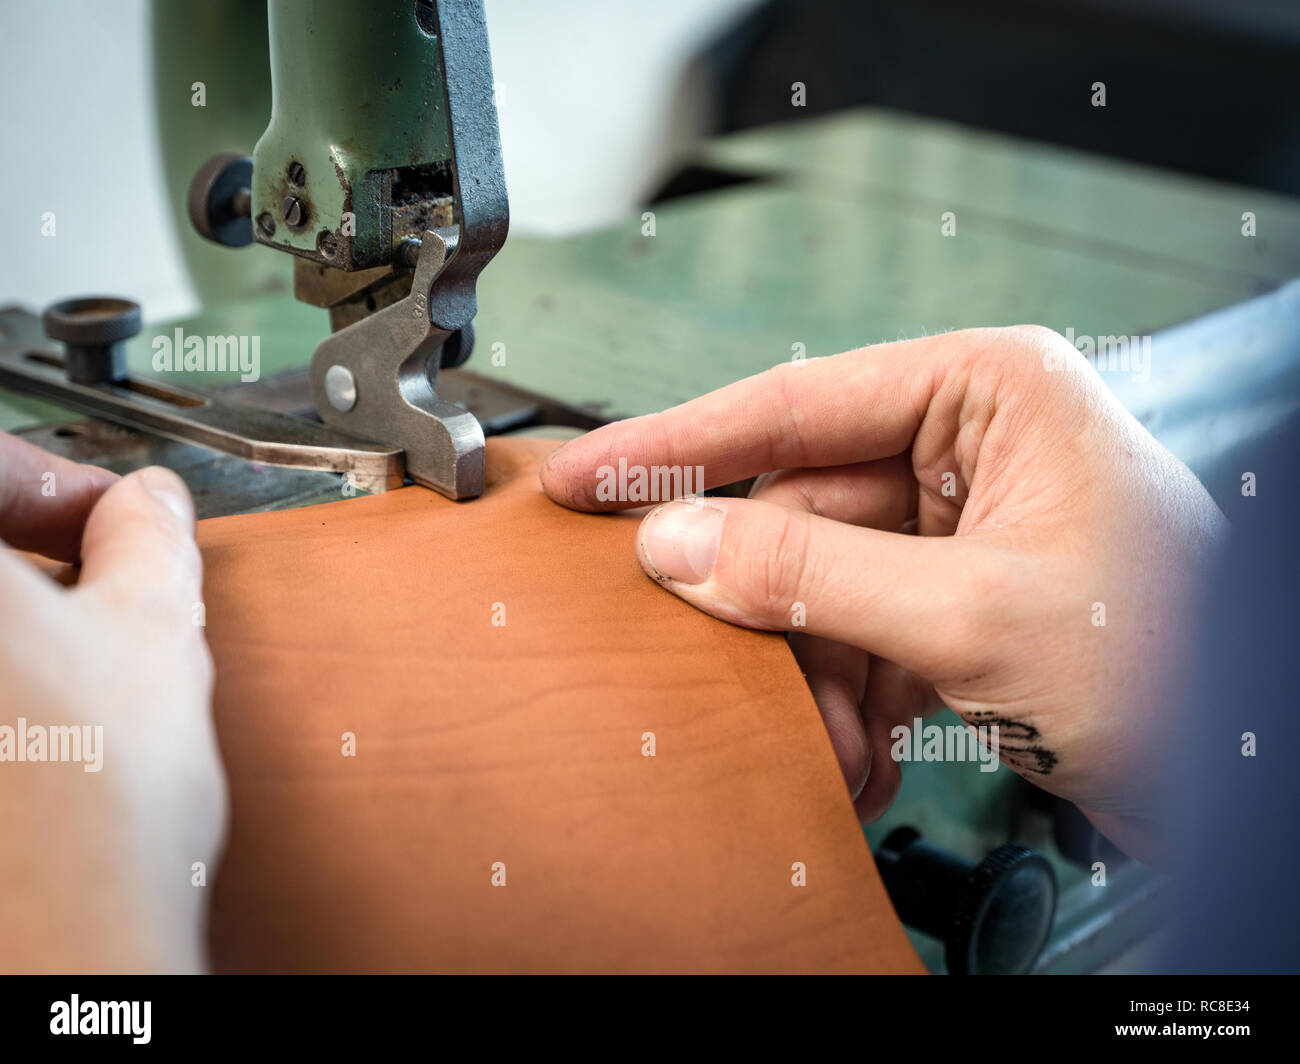 Leatherworker using machining leather handbag edge in workshop, close up of hands - Stock Image